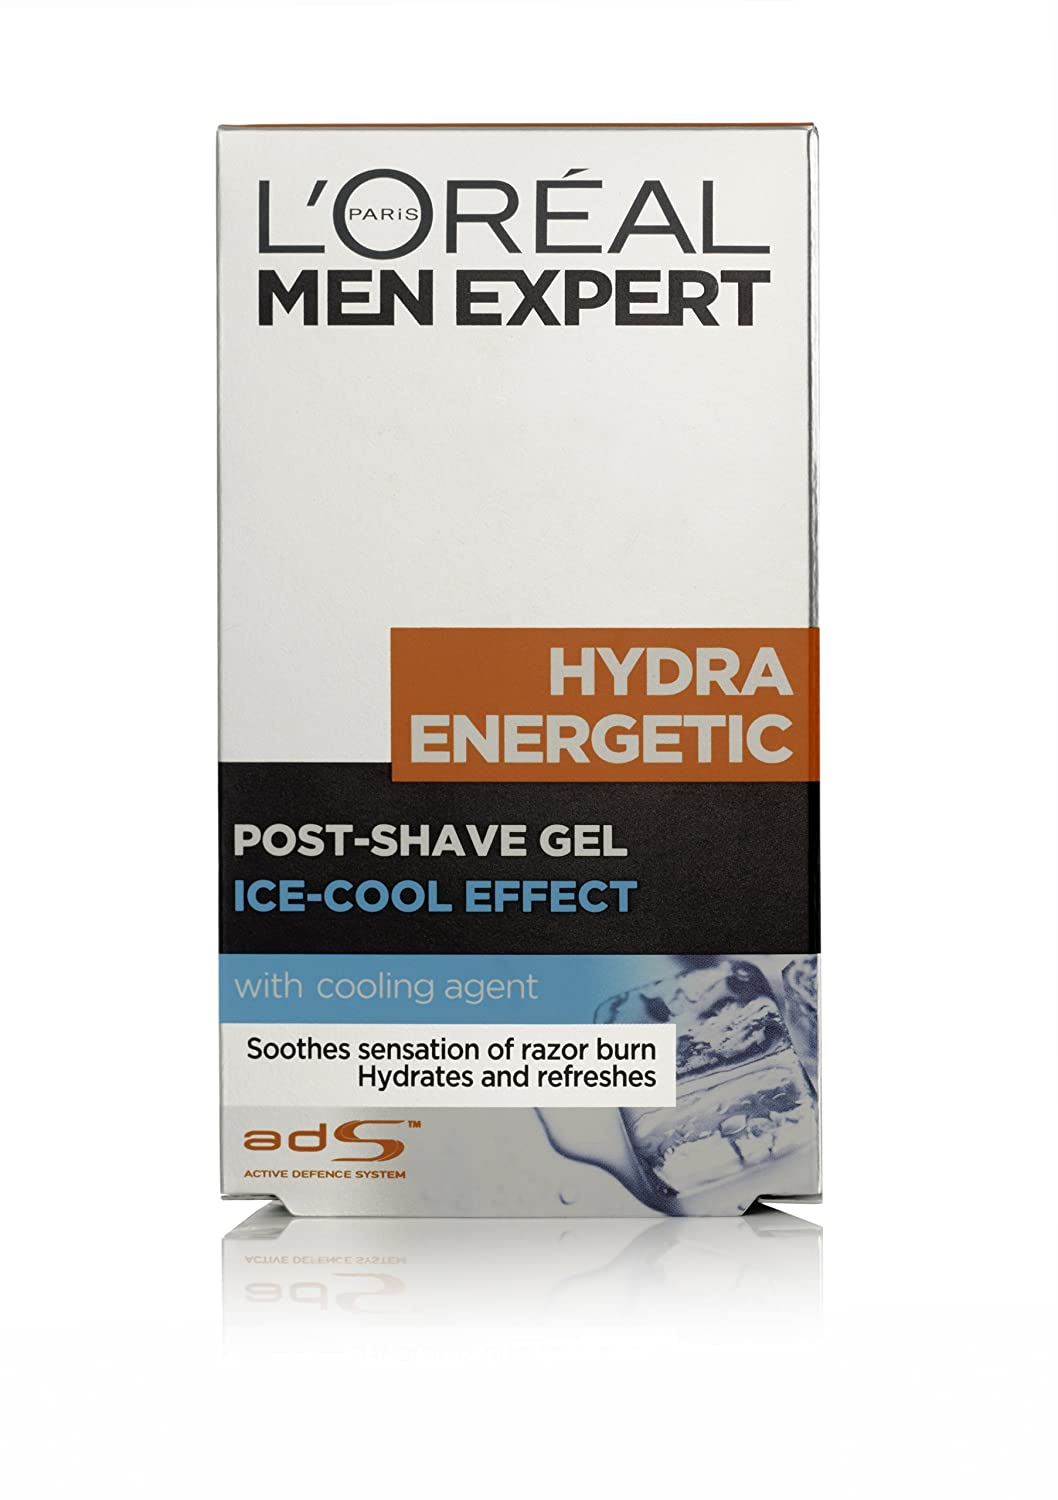 L'Oreal Paris Men Expert Hydra Energetic Aftershave Balm 100ml L' Oreal 3600521744000